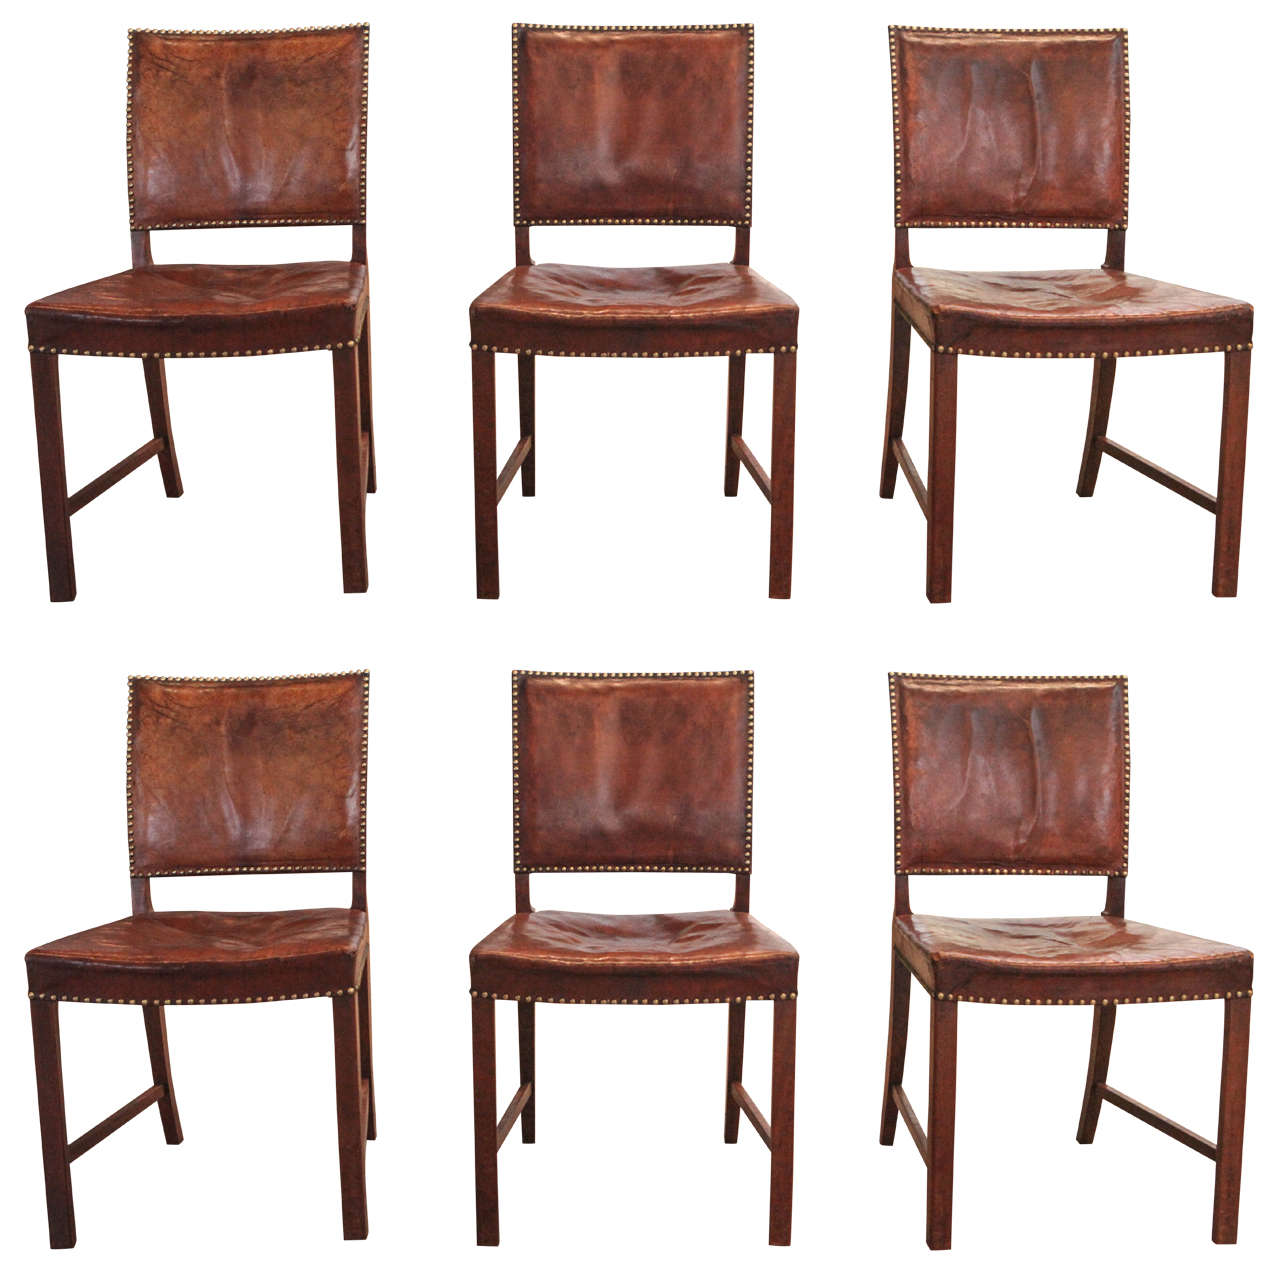 Sculpted rosewood danish dining chairs red modern furniture - Set Of Jacob Kjaer Dining Chairs Denmark 1934 At 1stdibs